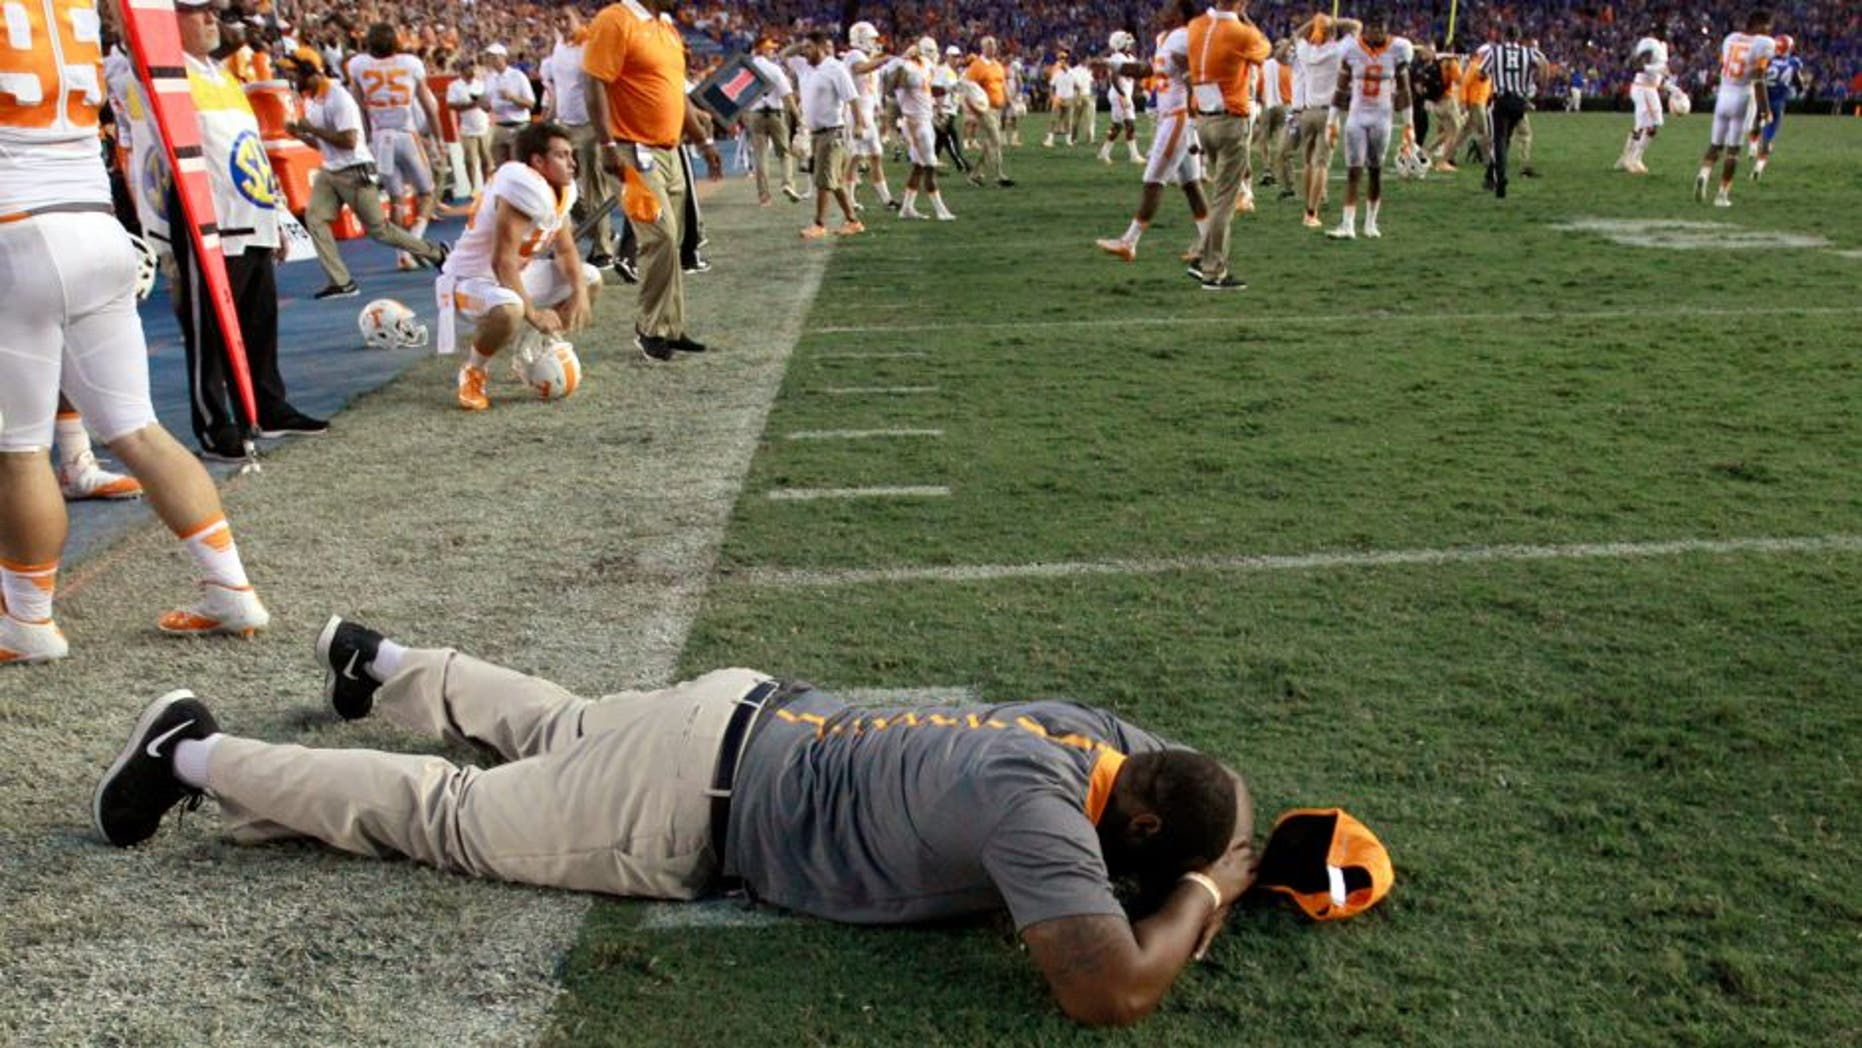 Sep 26, 2015; Gainesville, FL, USA; Tennessee Volunteers coach and players react as they lost to the Florida Gators at Ben Hill Griffin Stadium. Florida Gators defeated the Tennessee Volunteers 28-27. Mandatory Credit: Kim Klement-USA TODAY Sports